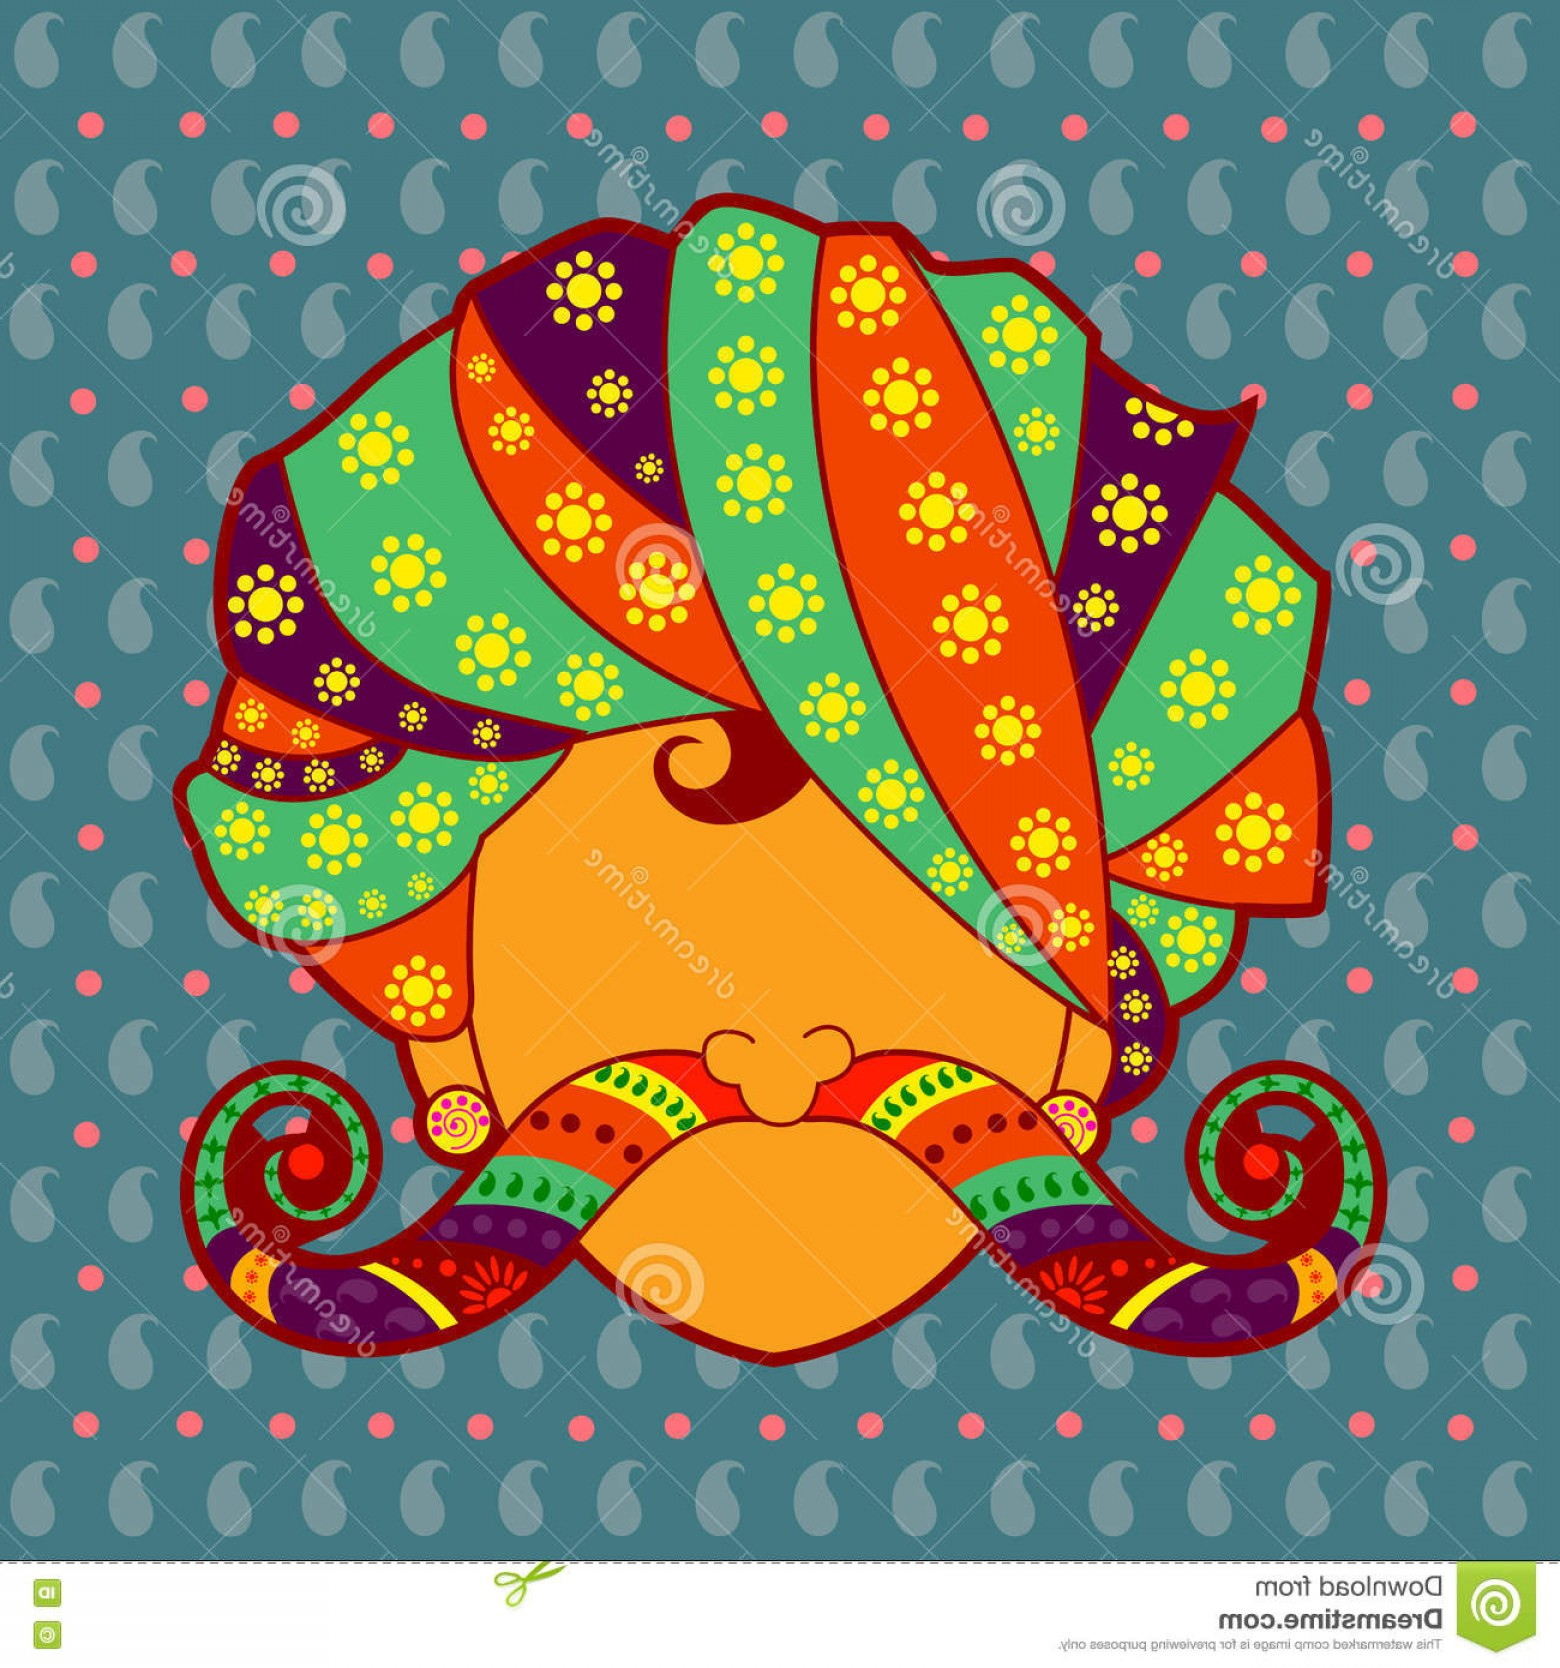 India Clip Art Vector Designs: Stock Illustration Rajasthani Man Turban Moustache Vector Design Indian Art Style Image